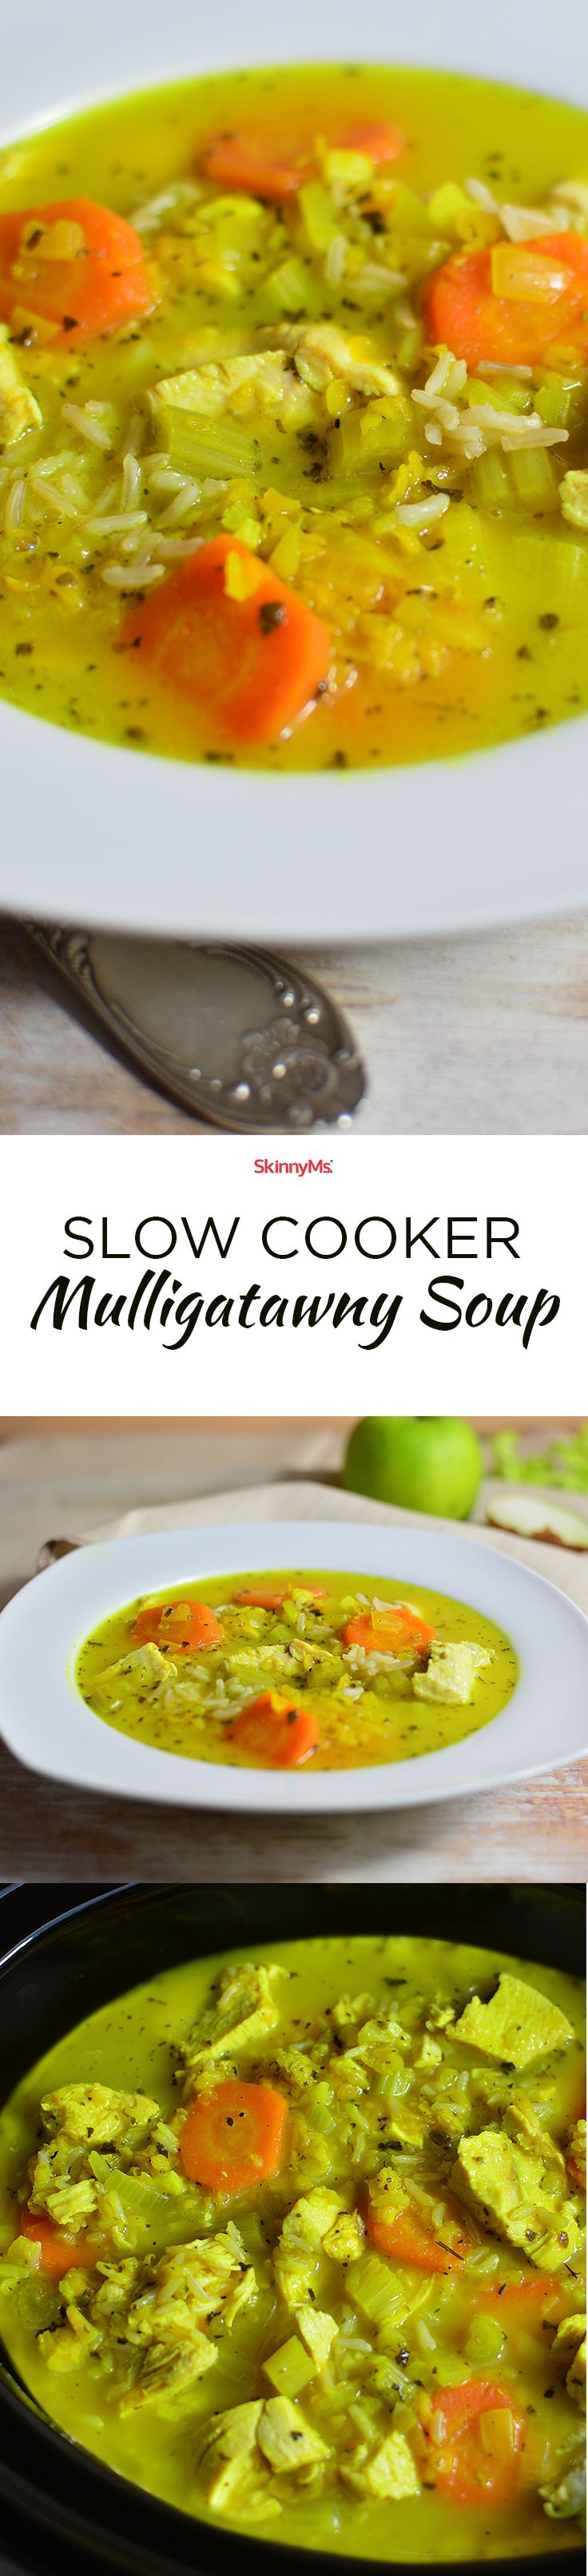 Have you ever had mulligatawny? Best soup ever! | Slow Cooker Mulligatawny Soup | mulligatawny soup slow cooker recipe | Skinny Ms.